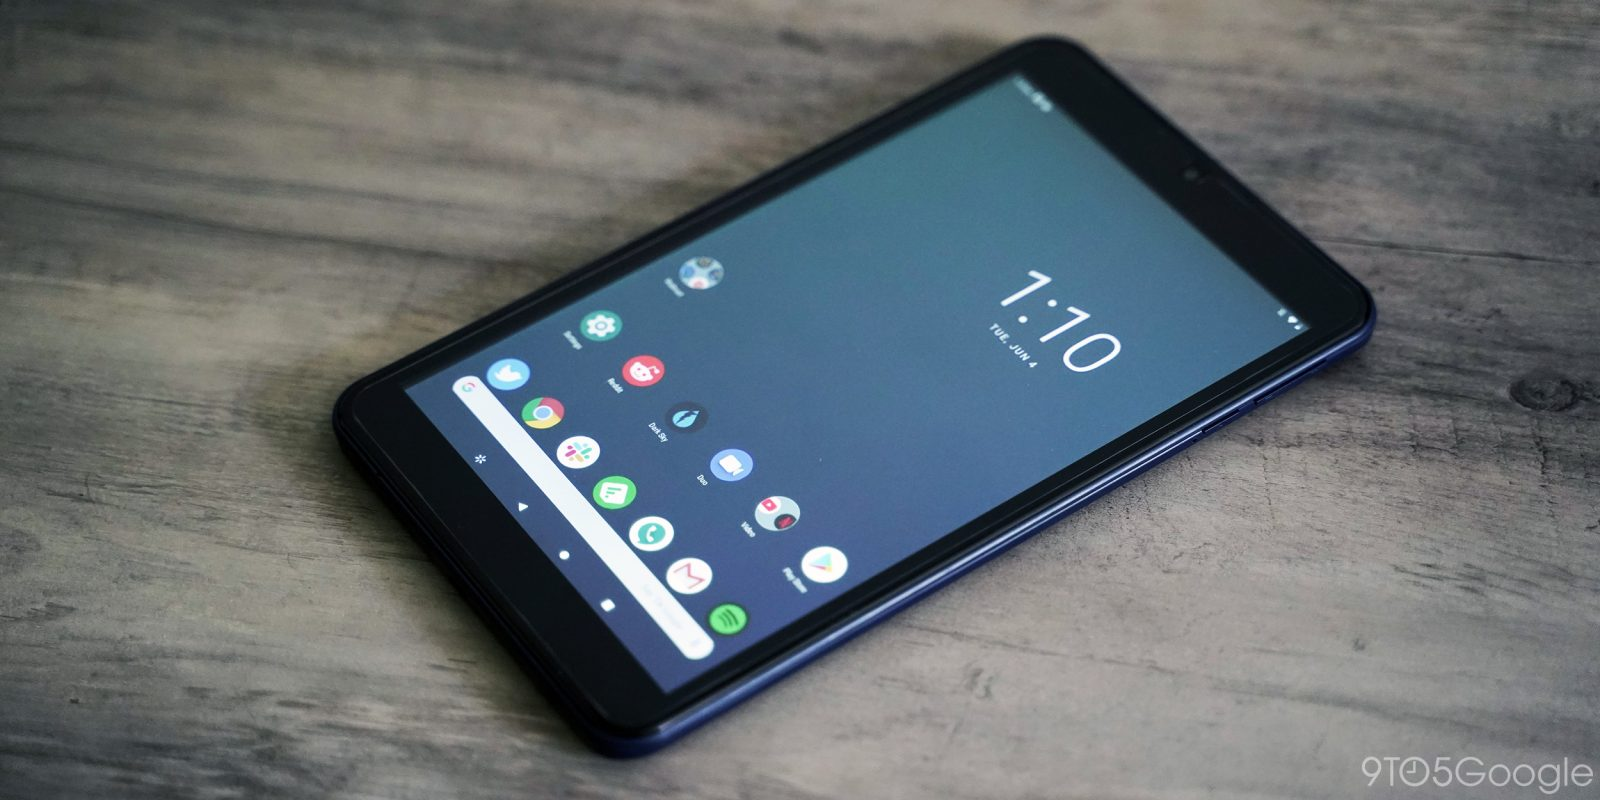 Hands-on: Walmart's Android tablets are halfway decent